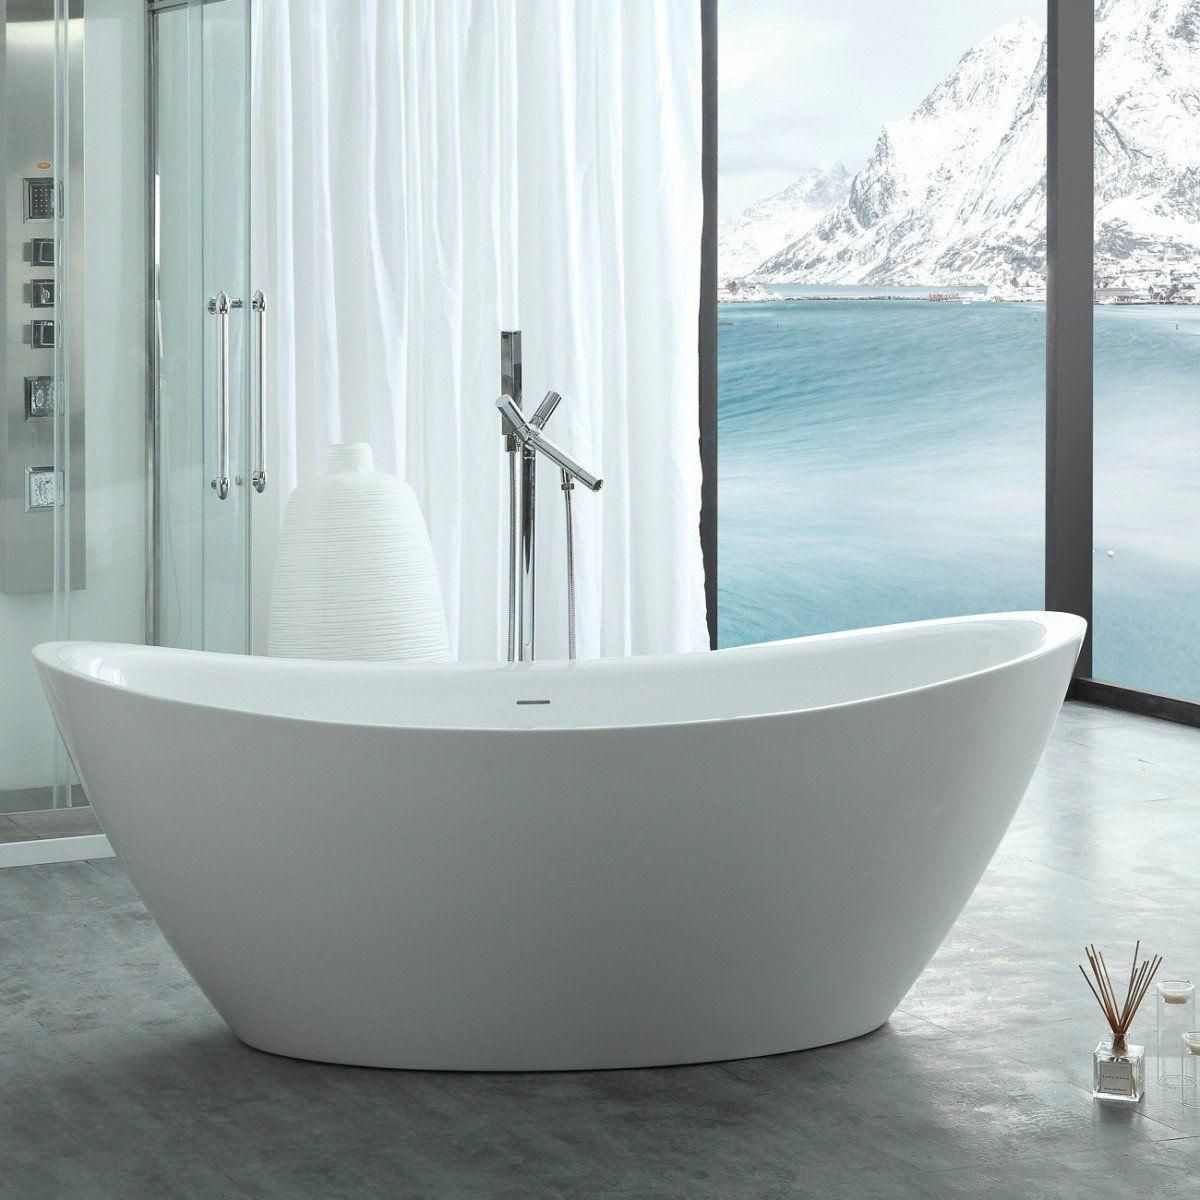 Virtu Usa Serenity 67 Freestanding Soaking Bathtub Only White In